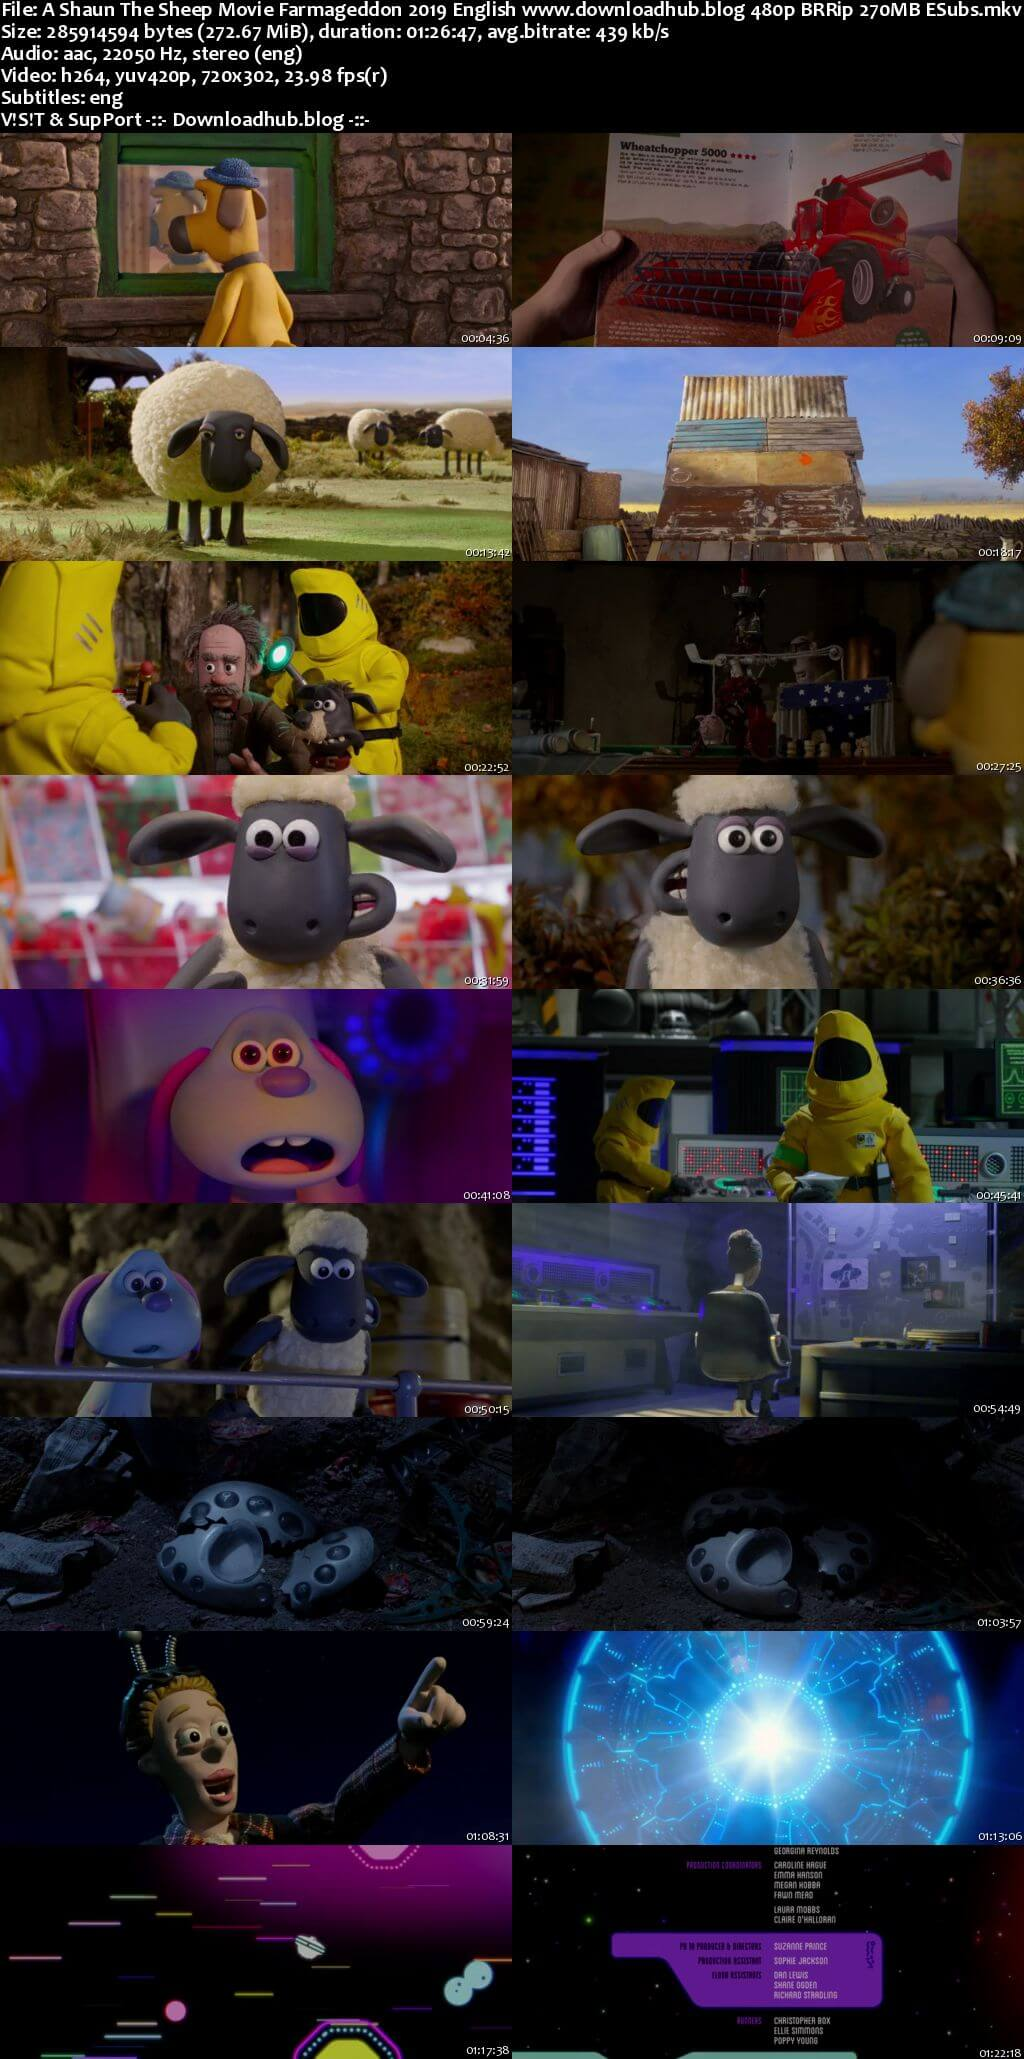 A Shaun the Sheep Movie Farmageddon 2019 English 270MB BRRip 480p ESubs